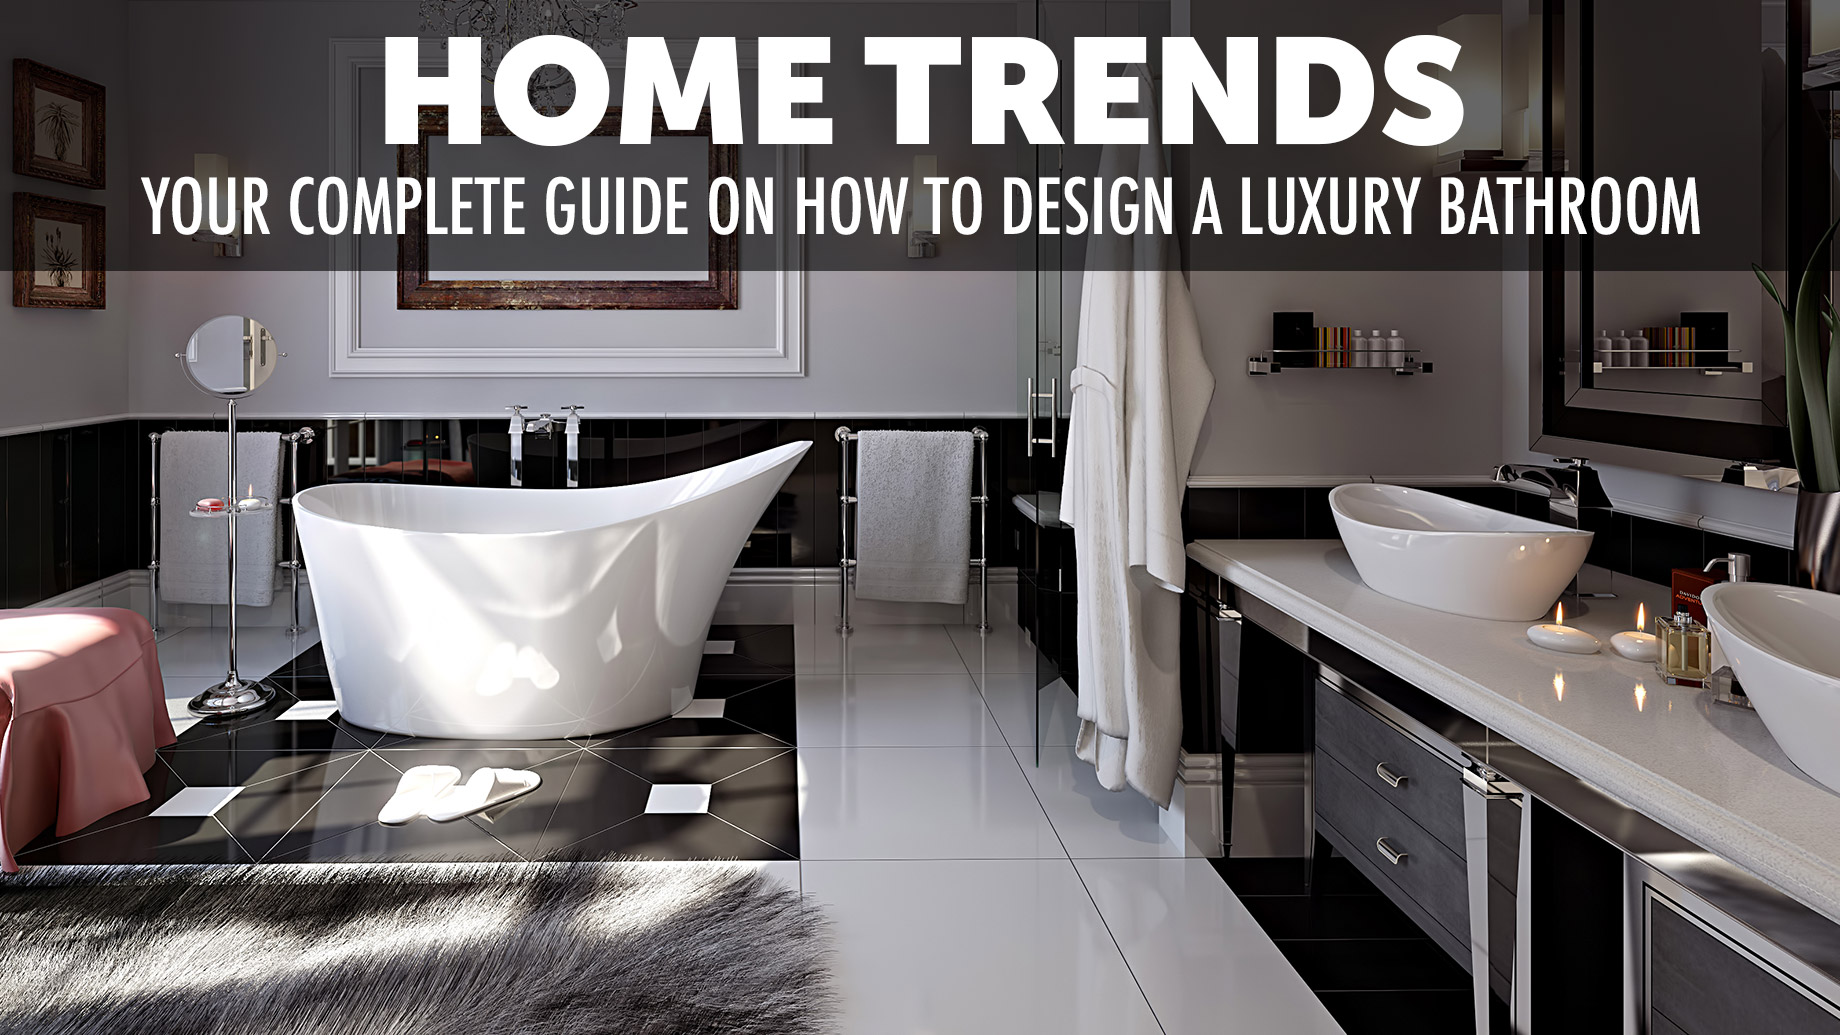 Home Trends - Your Complete Guide on How to Design a Luxury Bathroom